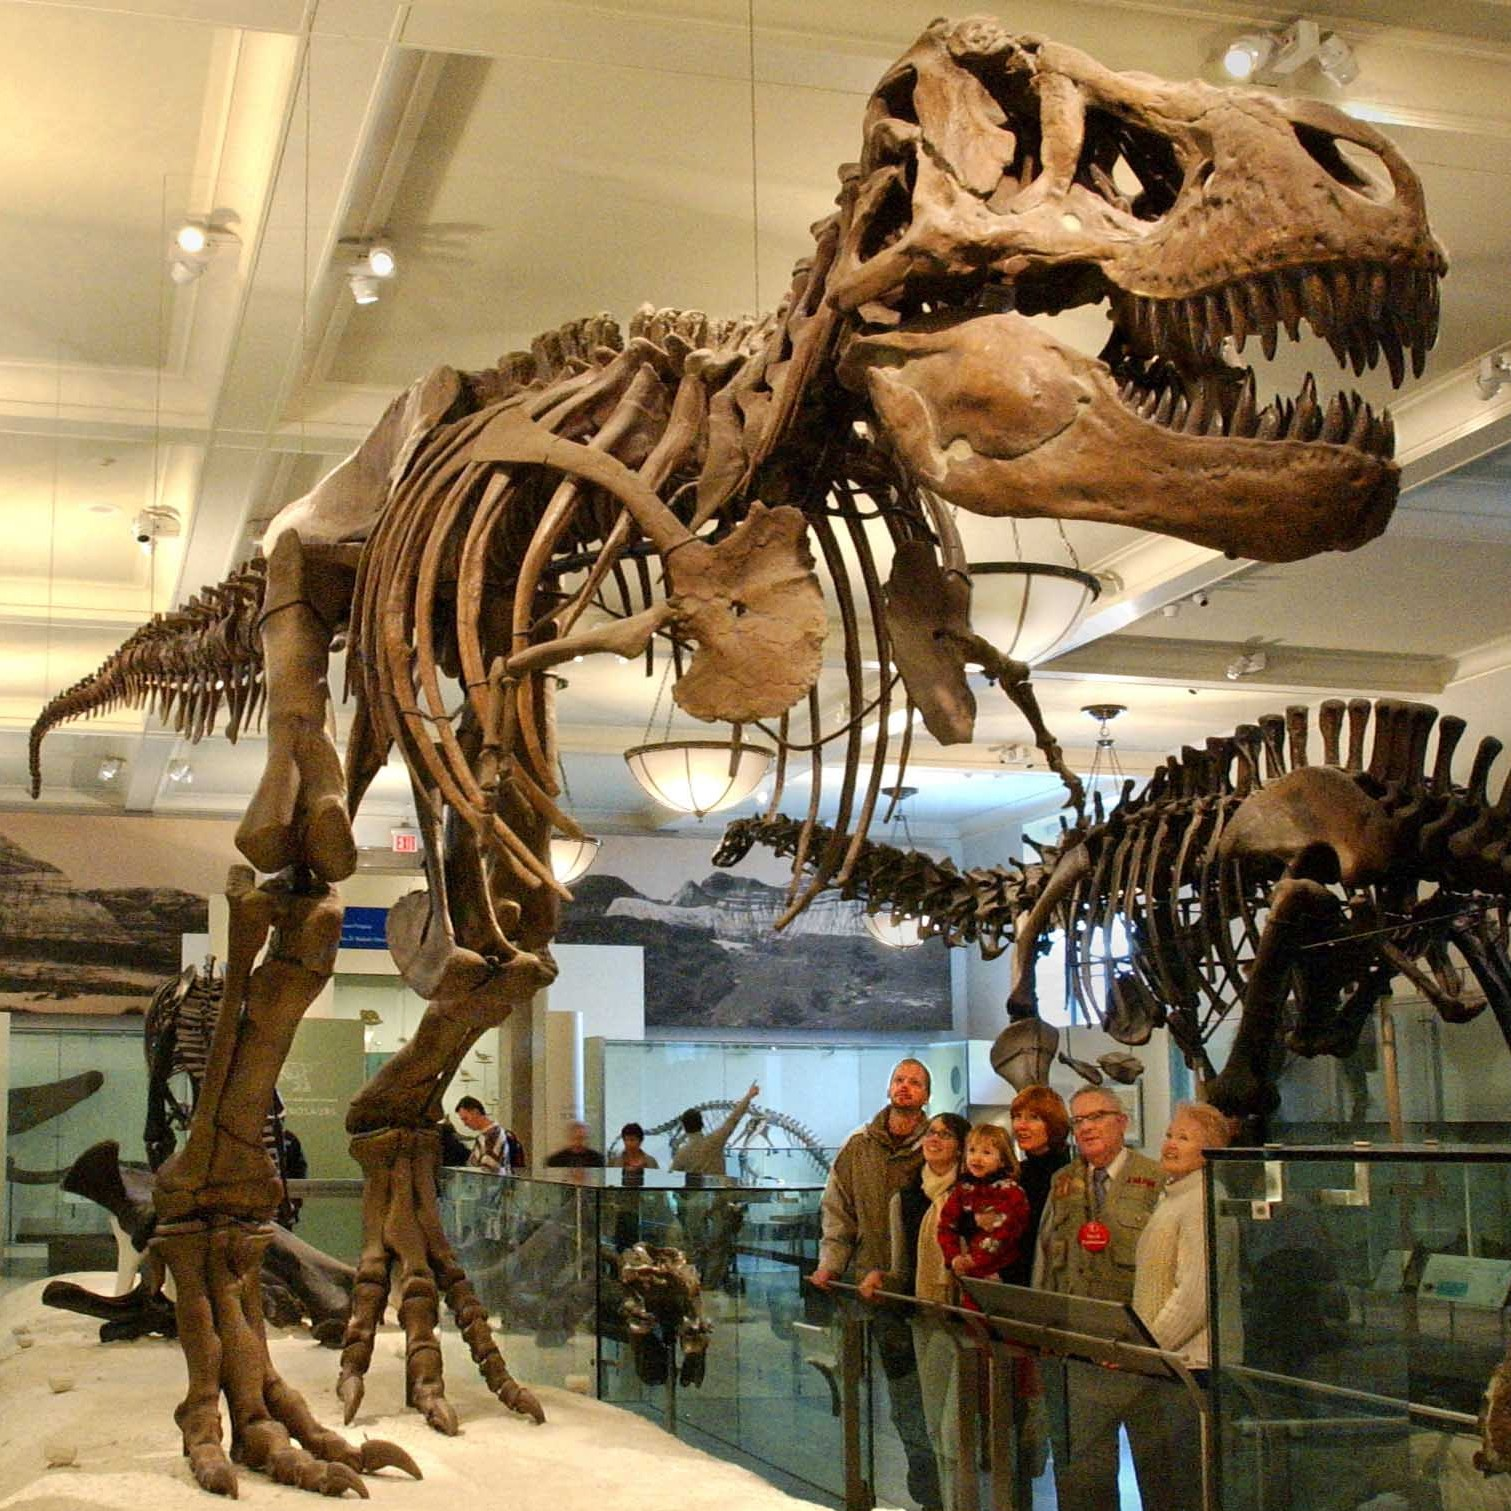 Nyc_Att_American_Museum_of_Natural_History